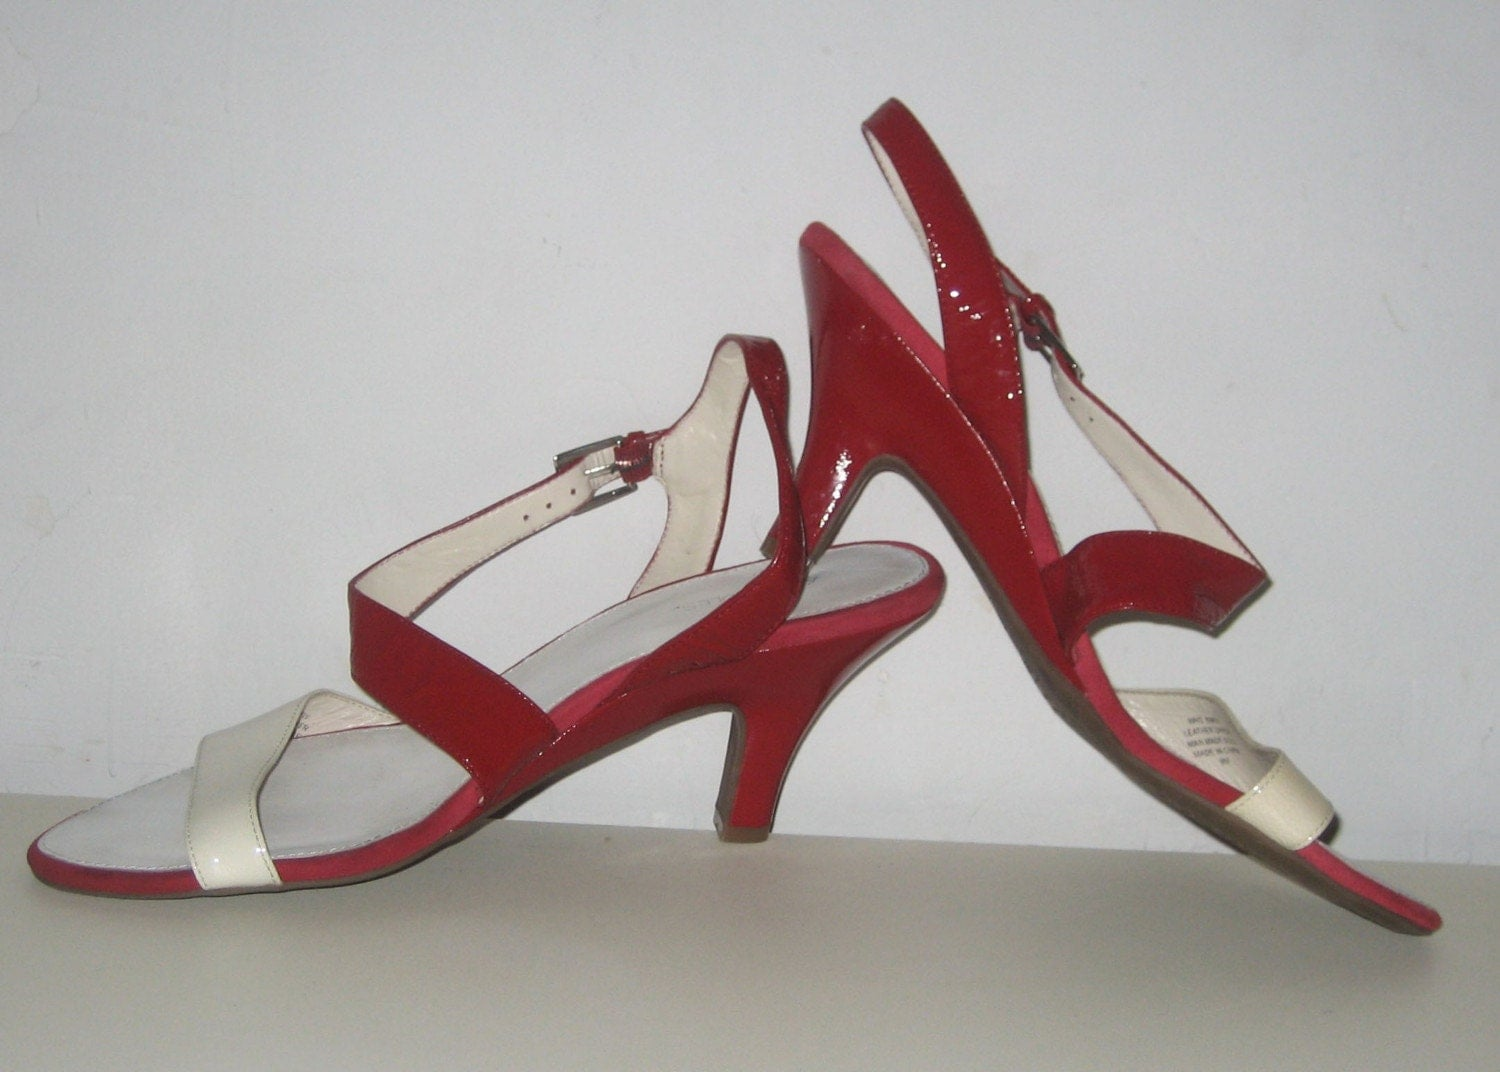 Vintage Red and White 2 Toned Patent Leather Slingback Sandals size 9